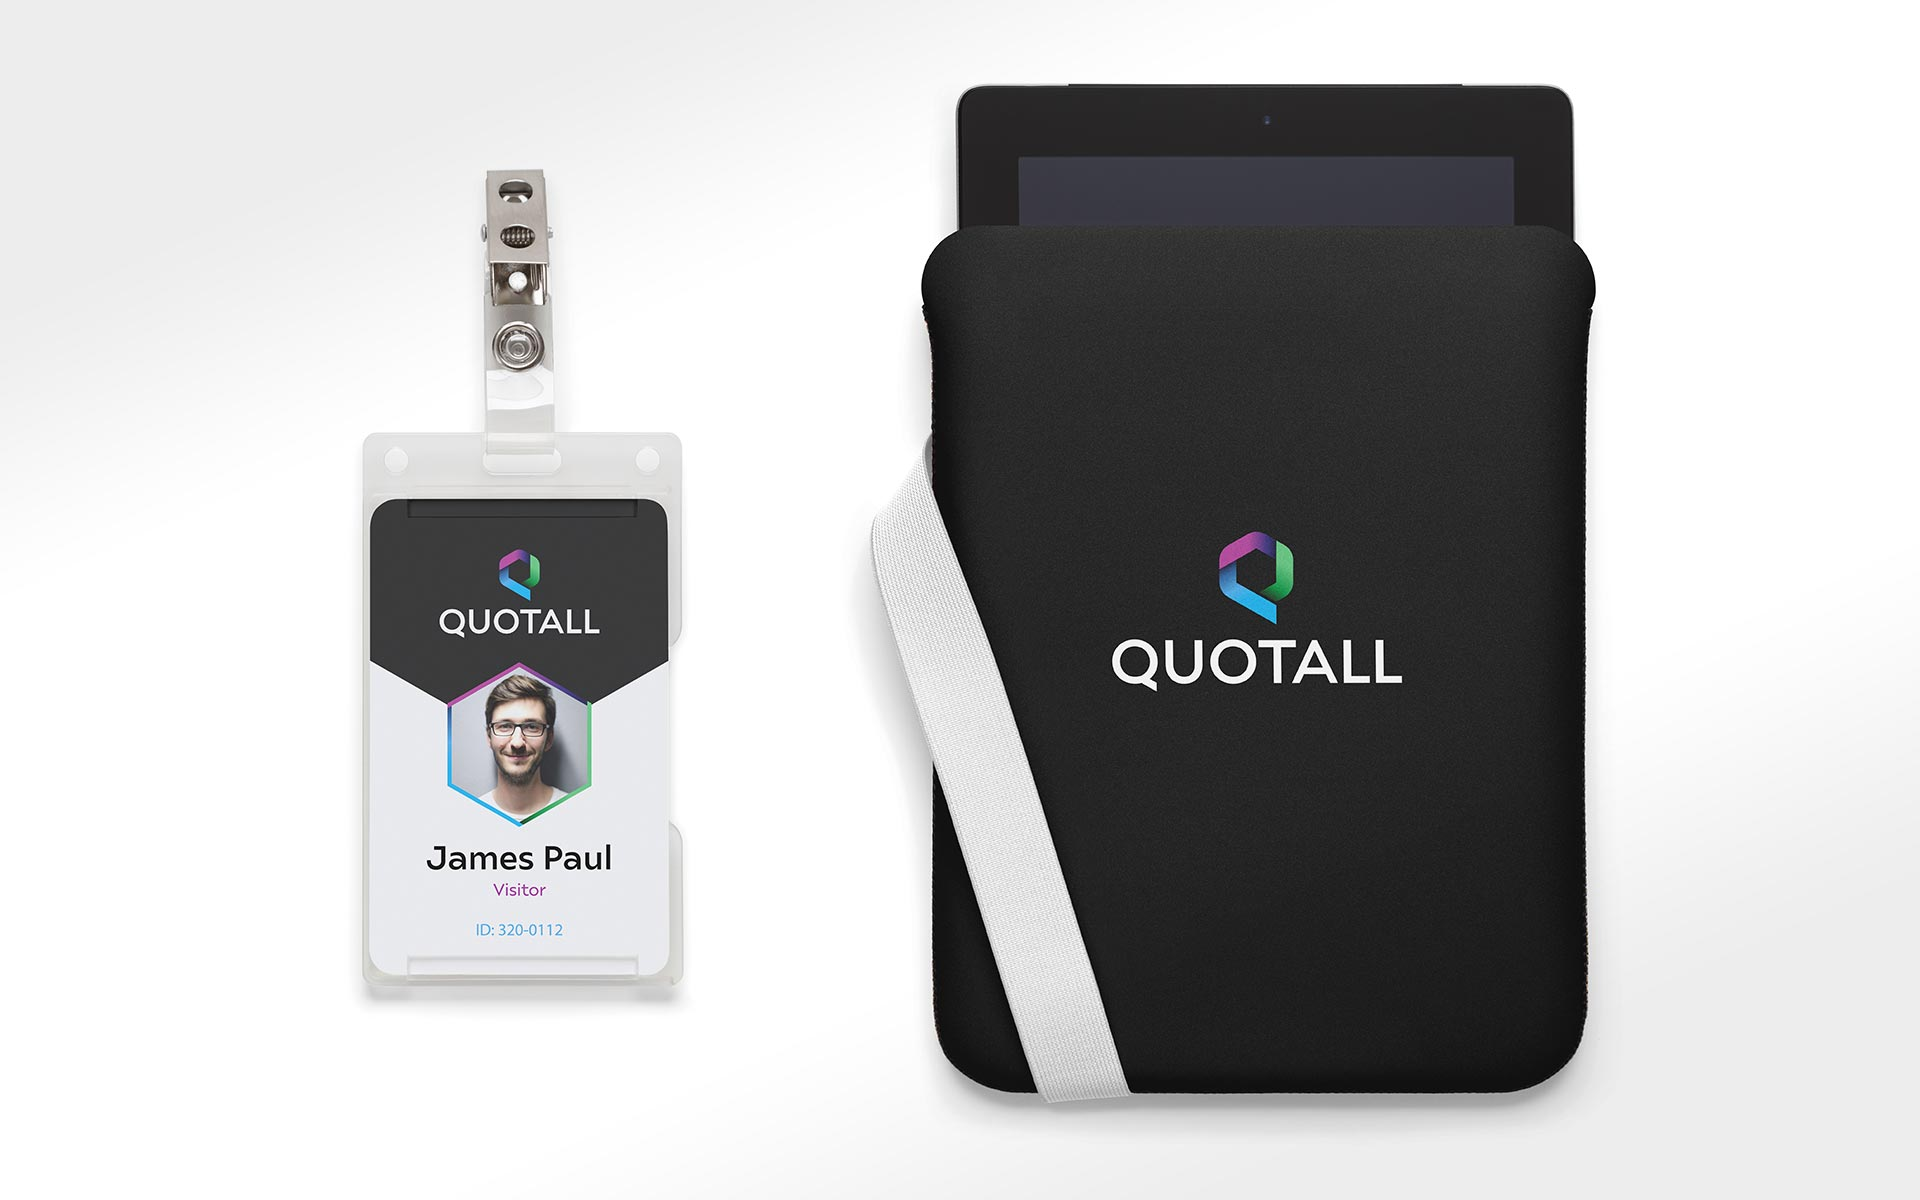 Quotall Logo Design Presented on Name Badge and iPad Case